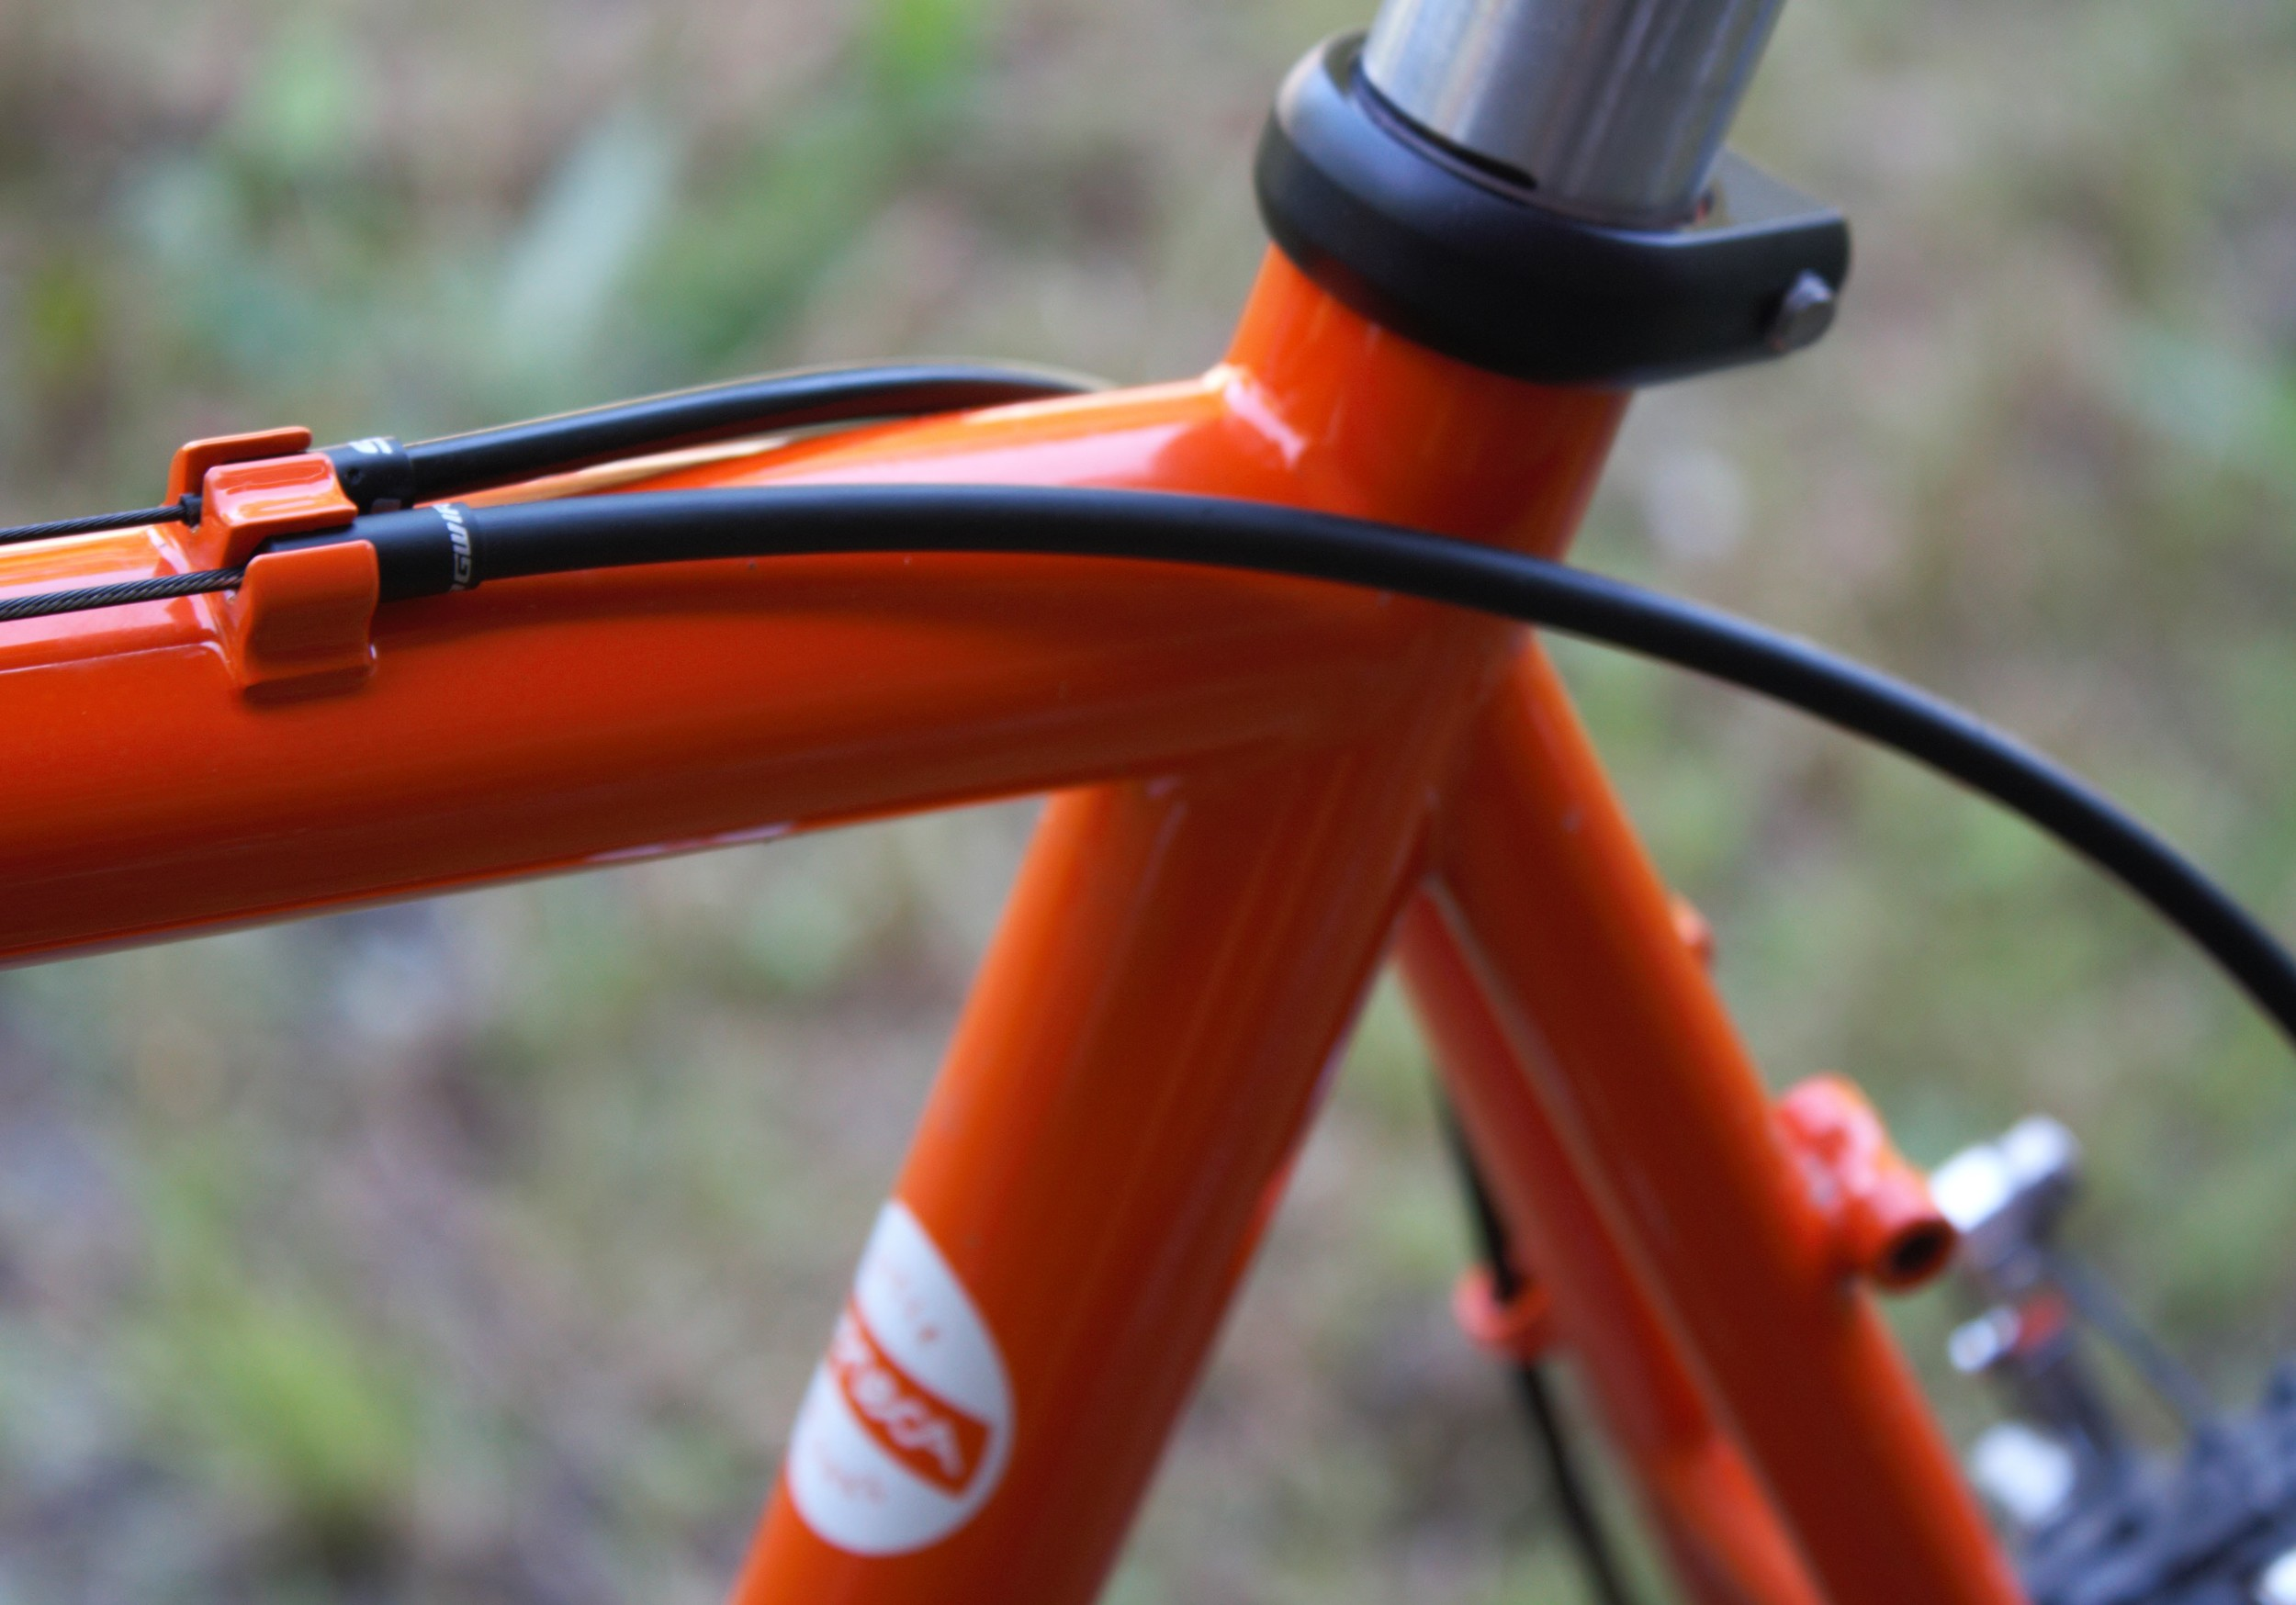 Top tube cable routing for the rear brake and rear derailleur.